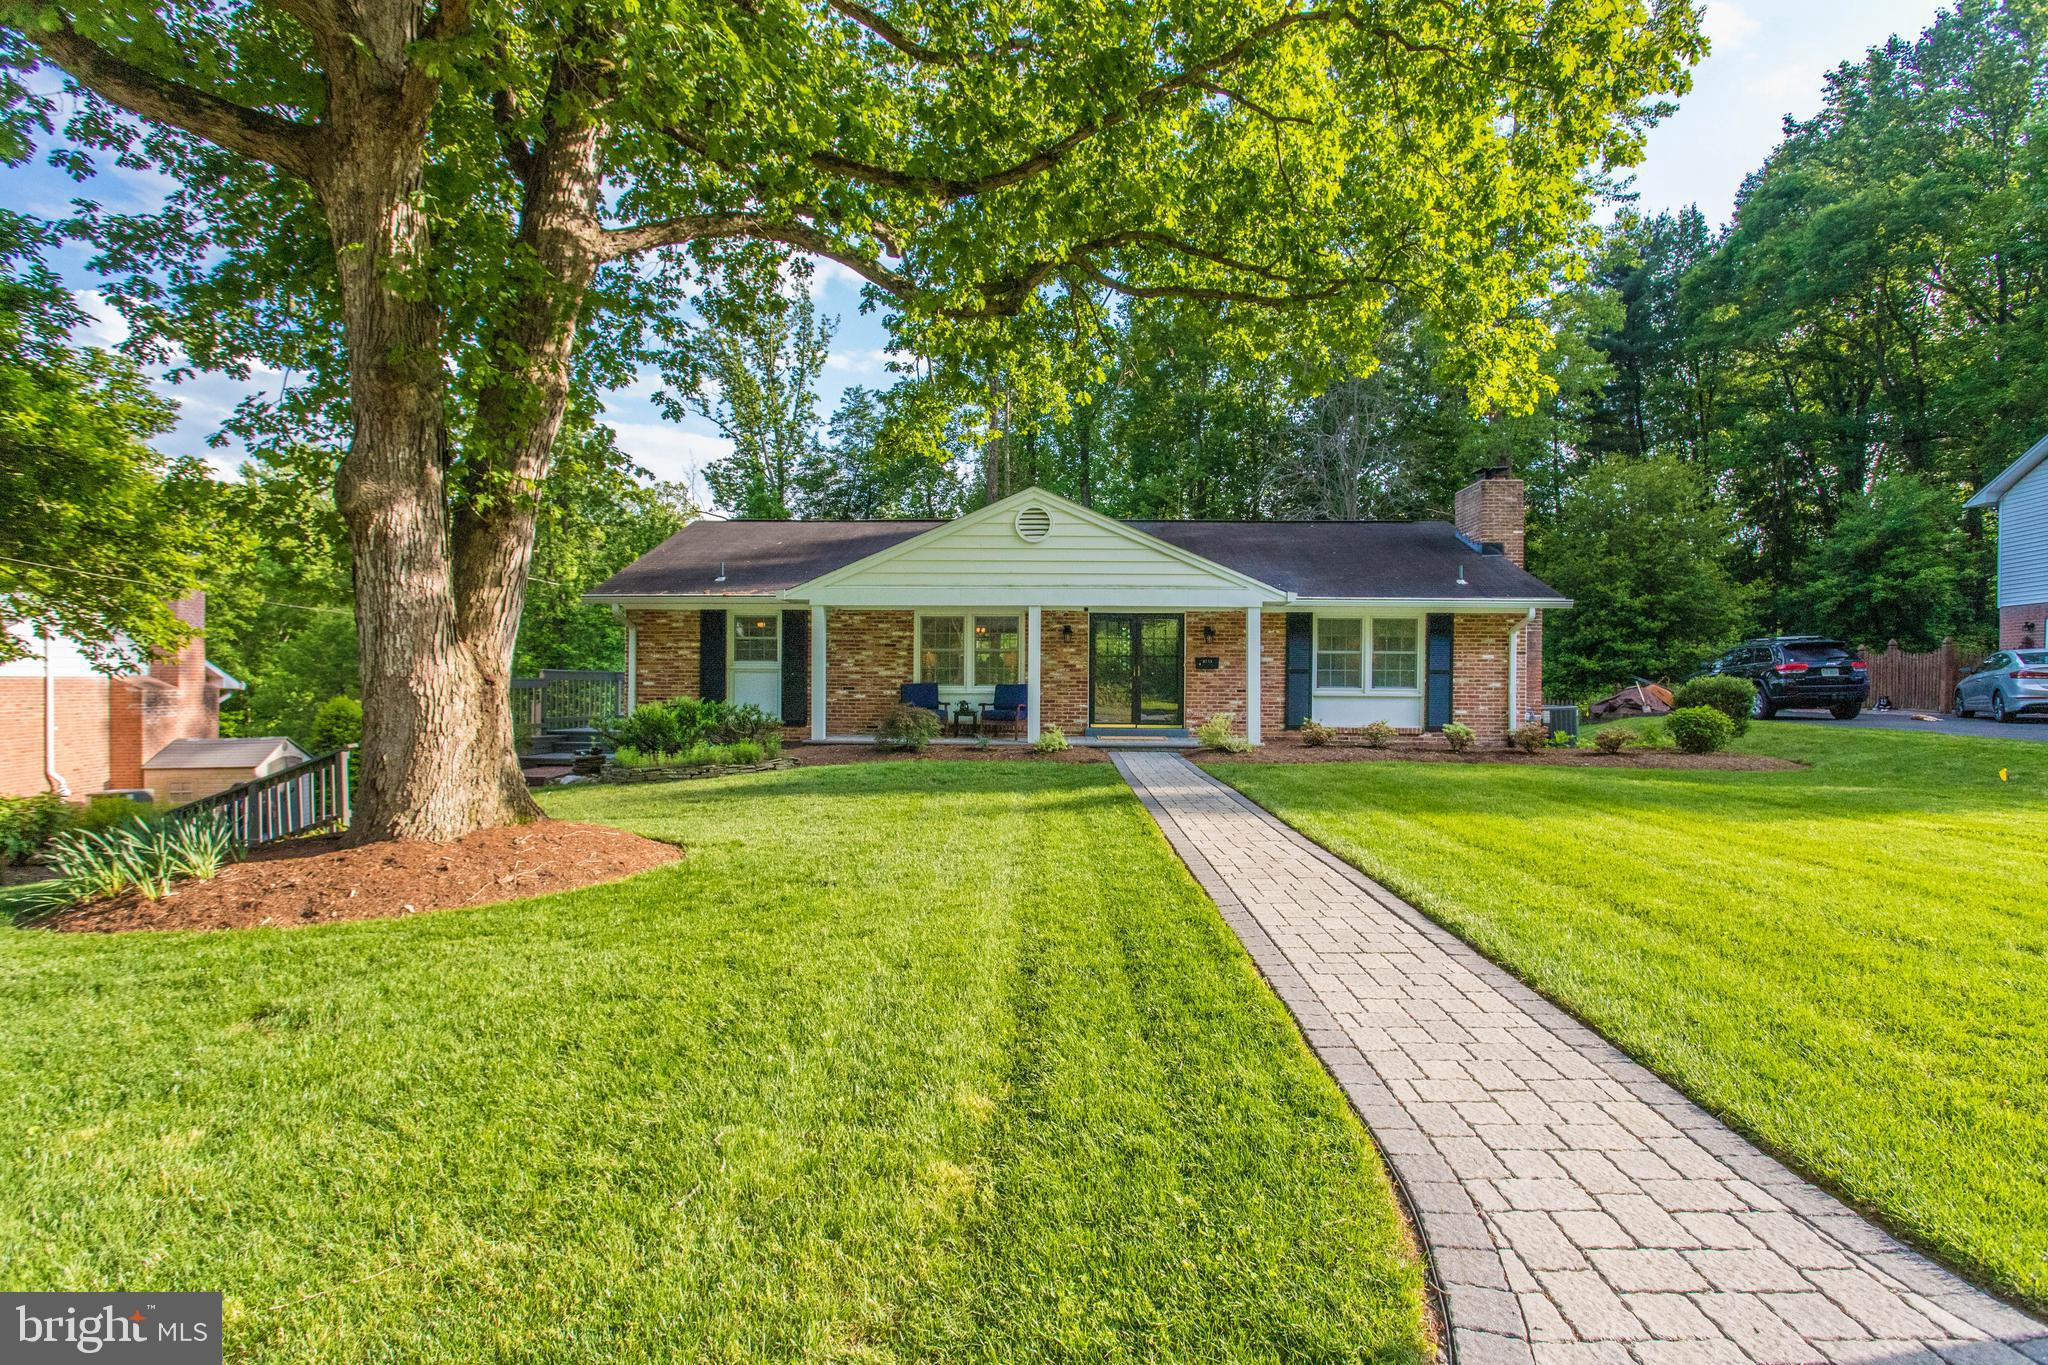 Sought-after and rarely available 4 BR/3 BA raised rambler, backing to parkland and creek, in beautiful Camelot.  This home is classically designed with thoughtful updates.  Excellent replacement windows 2017, deck/patio new in 2017, appliances 2015, furnace and AC 2013, water heater 2017, all make this a smart purchase!  This home is a gem!